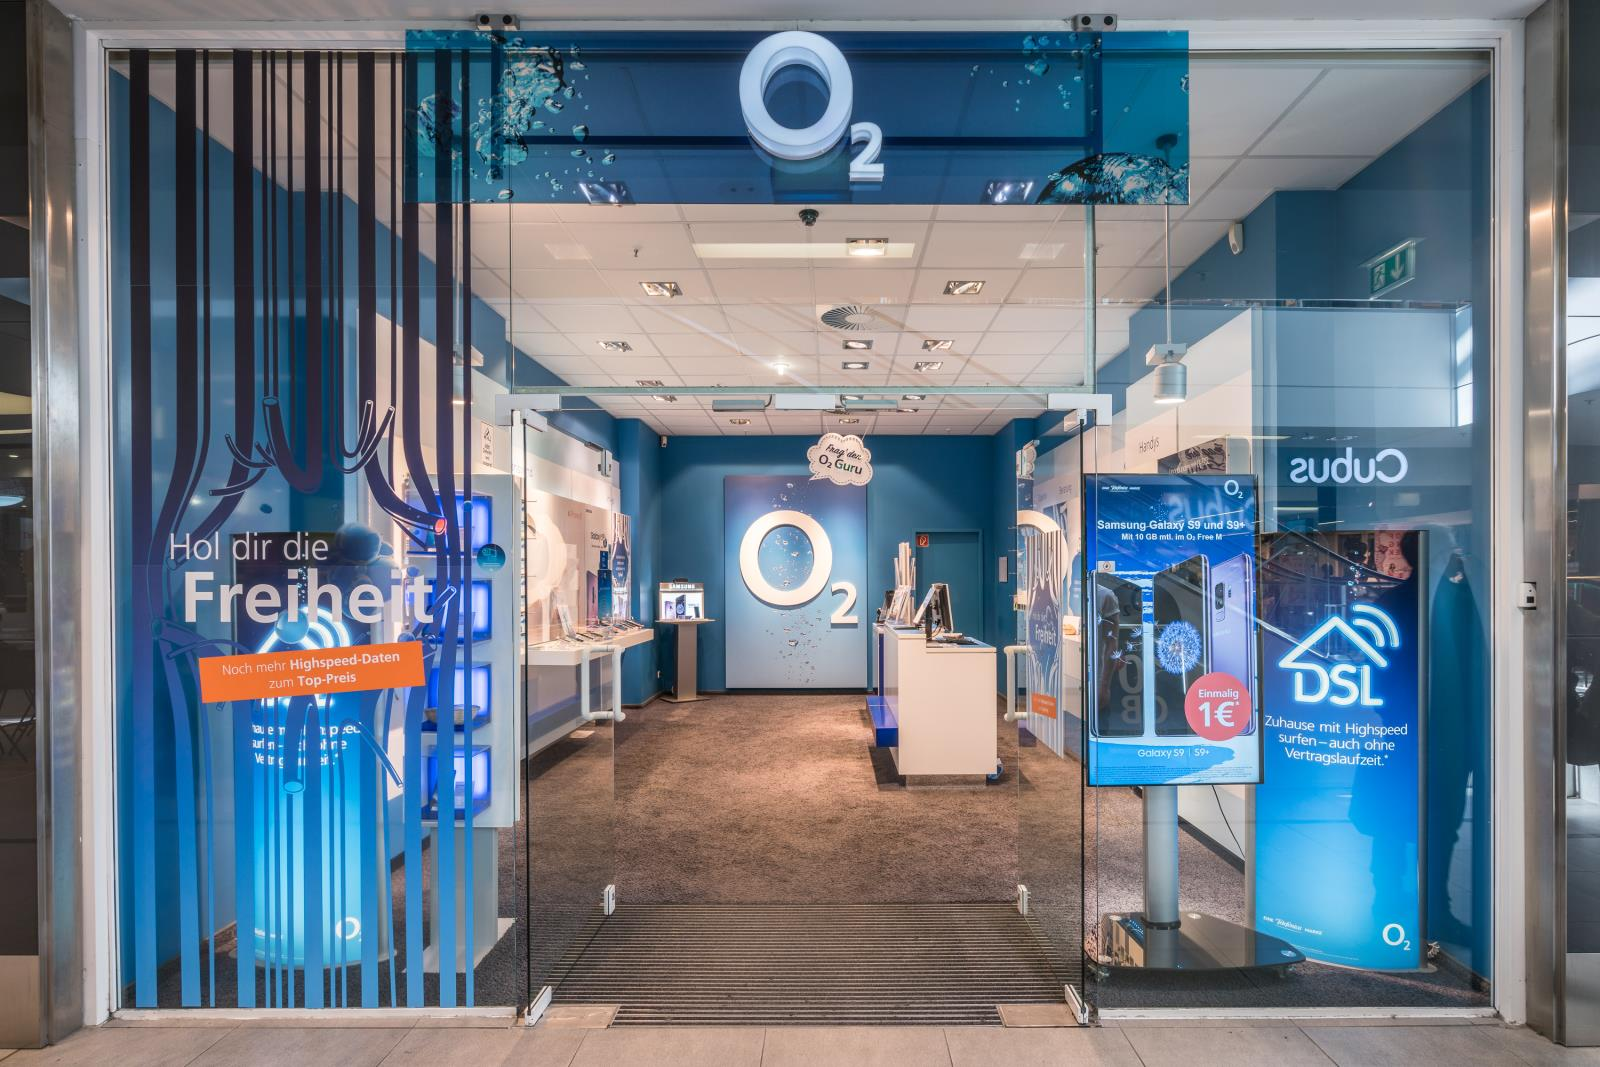 o2 Shop, Hamburger Str. 37 in Hamburg